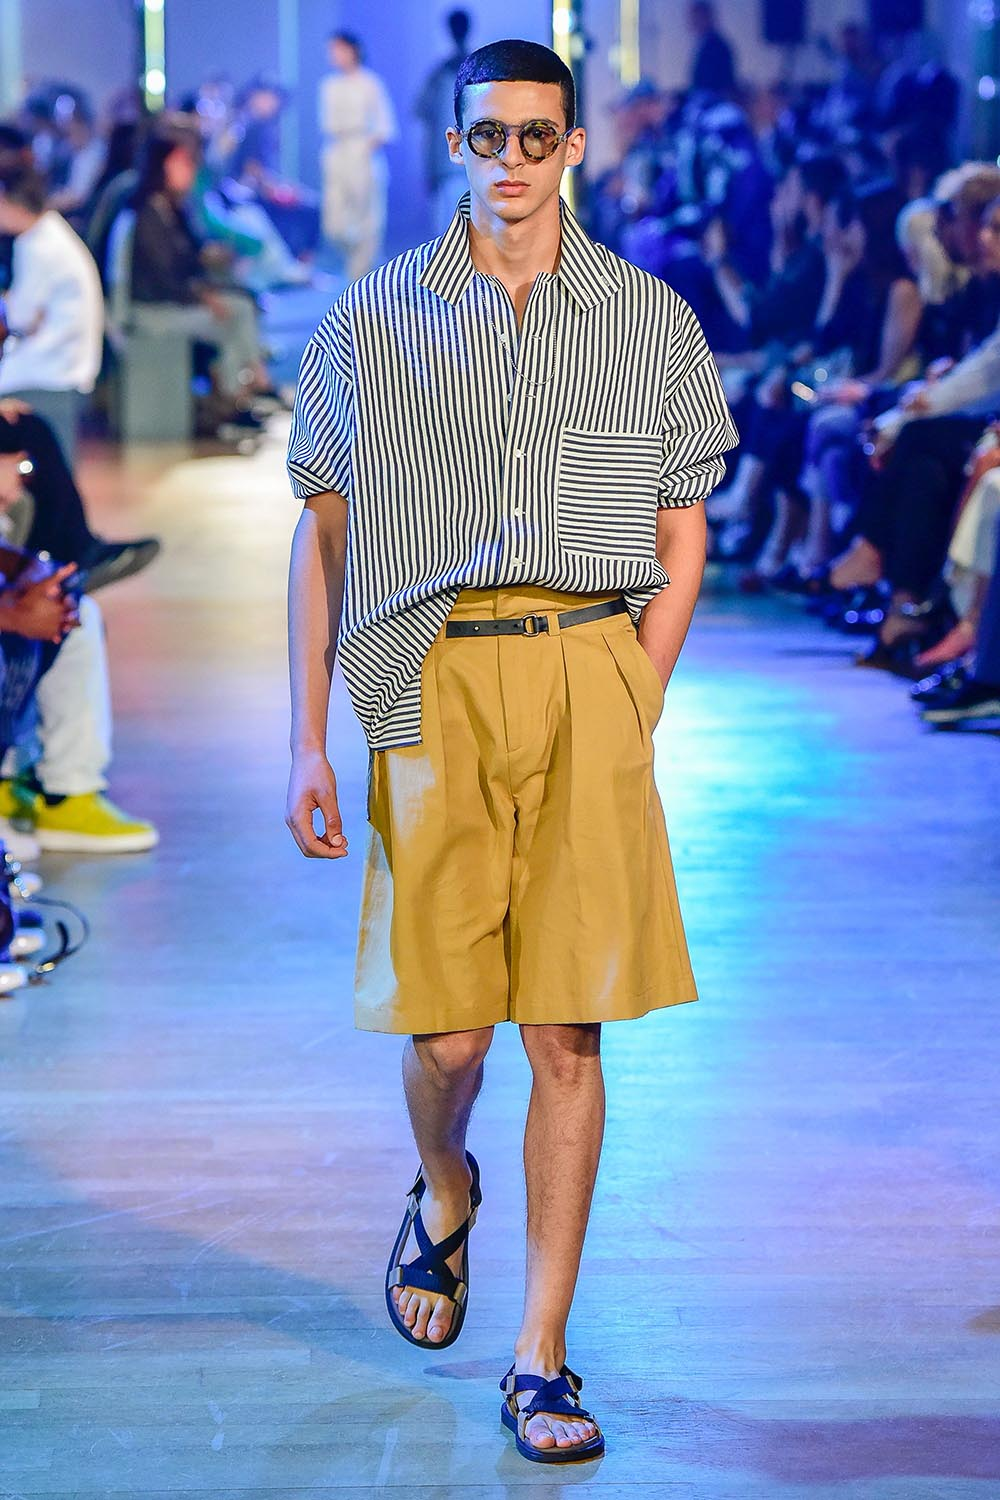 Cerruti 1881 Paris Fashion Week Men's SS19 - Sagaboi - Look 14